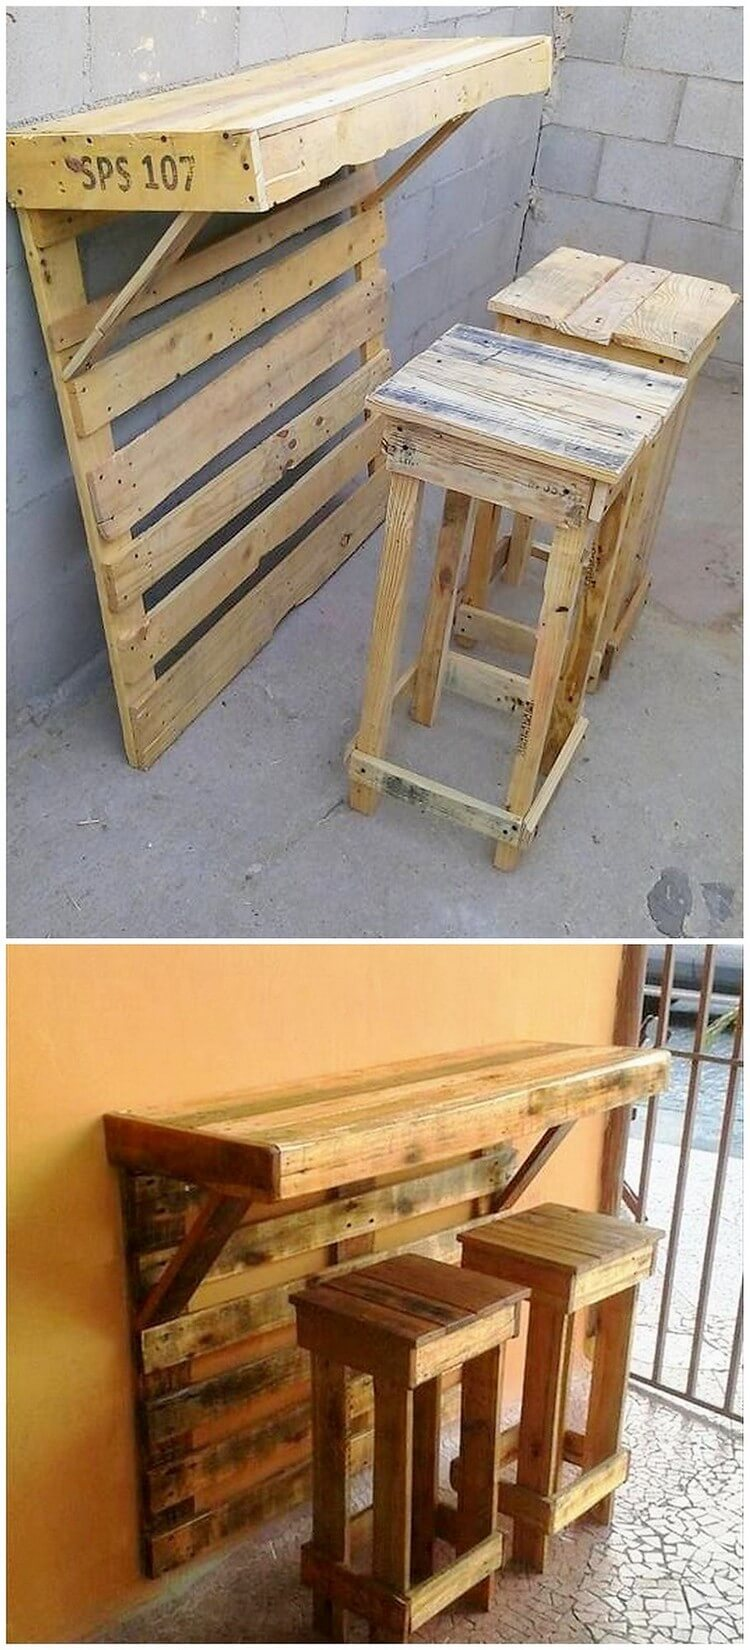 Creative diy shipping wood pallets repurposing ideas for Repurposed pallet projects